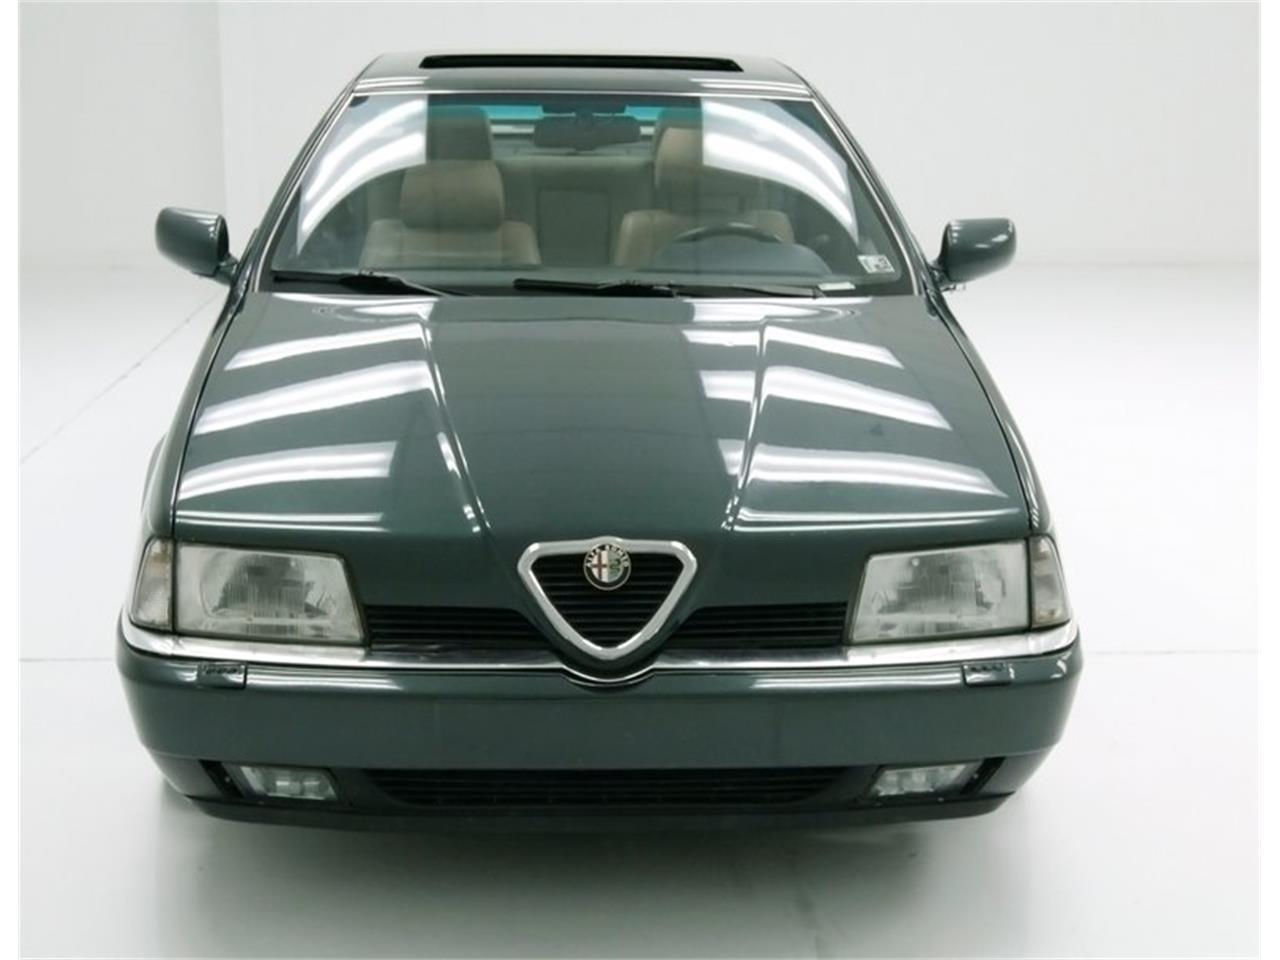 Large Picture of '95 Alfa Romeo 164 located in Morgantown Pennsylvania Auction Vehicle Offered by Classic Auto Mall - PFJN